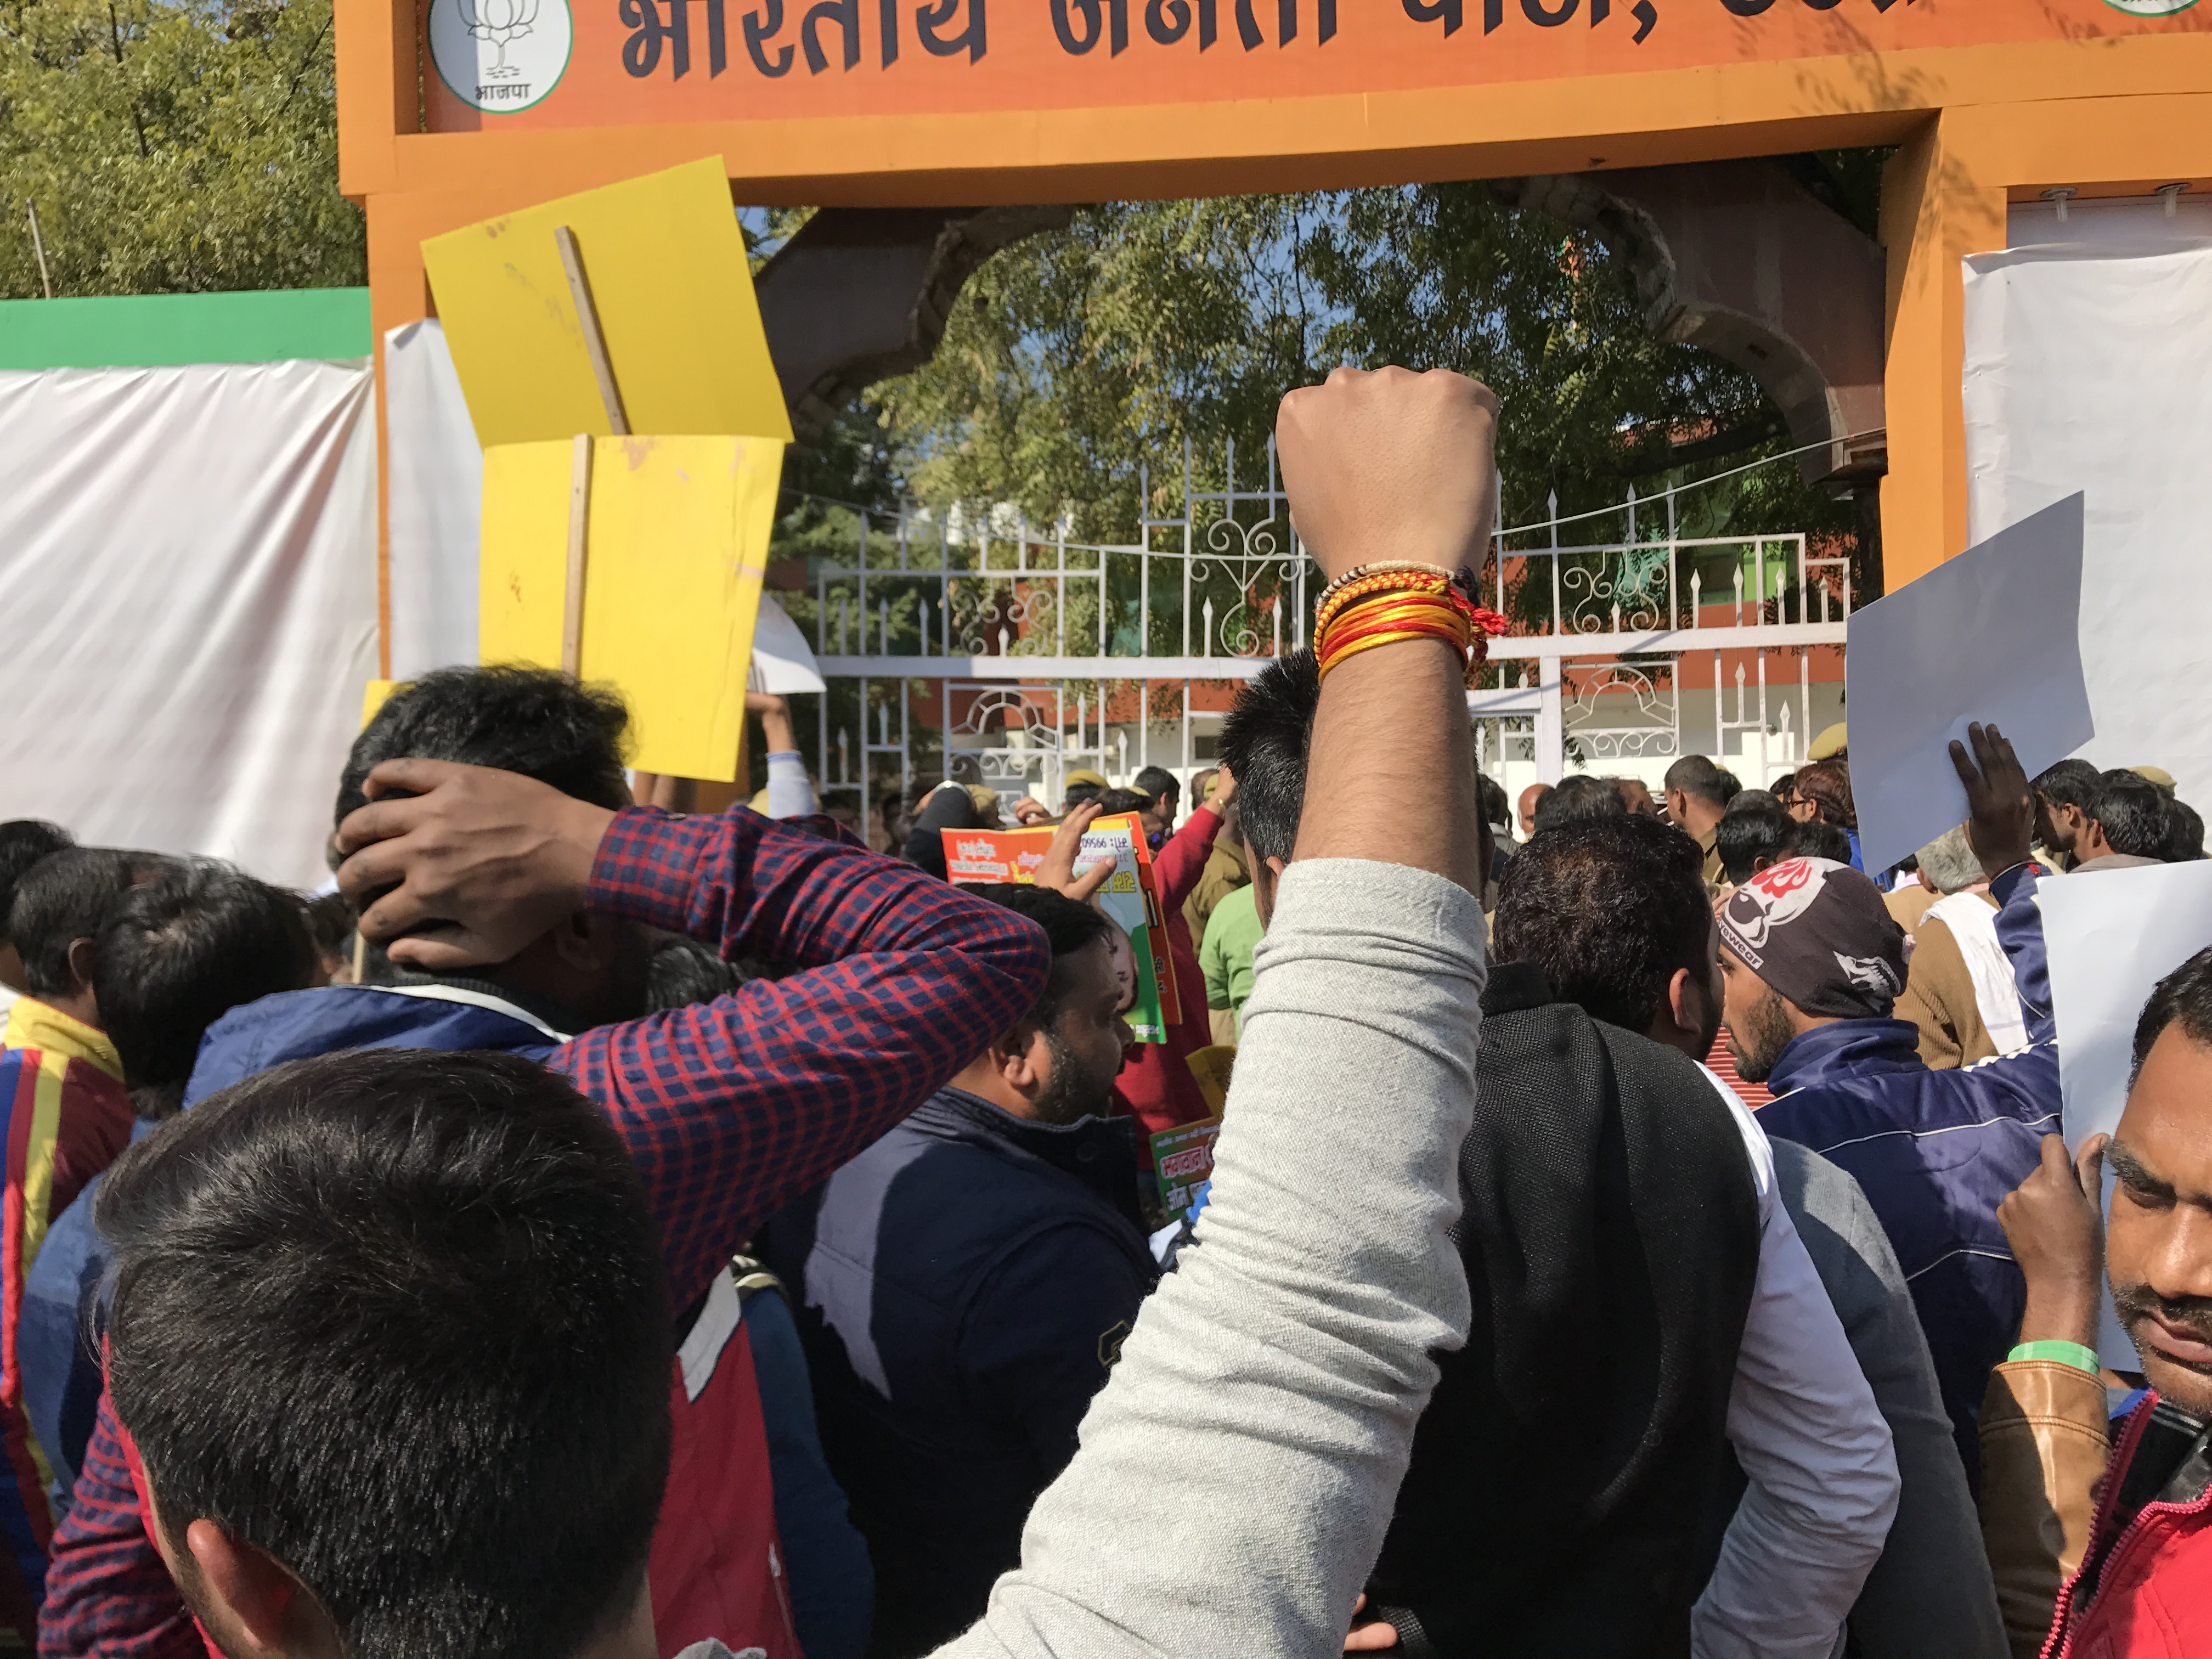 BJP supporters protesting outside the party headquarters in Lucknow.